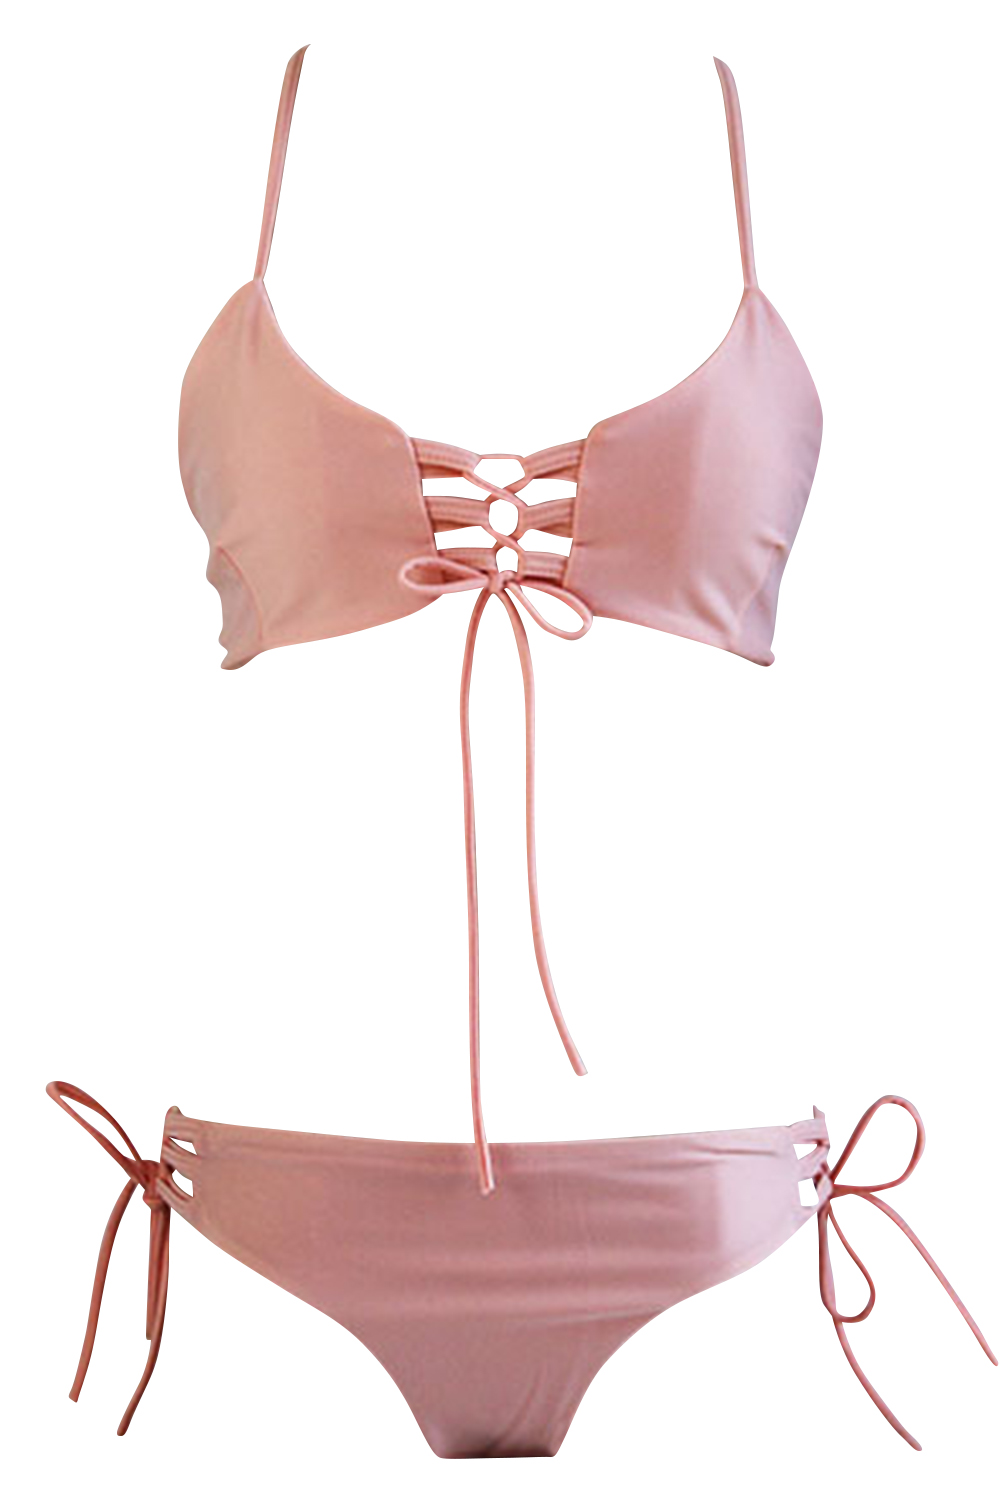 997fb47178f68 Hot Blush Lace-up Front Crossed Back Two Piece SwimwearThe two piece  swimwear is made from polyester and spandex with lace-up front